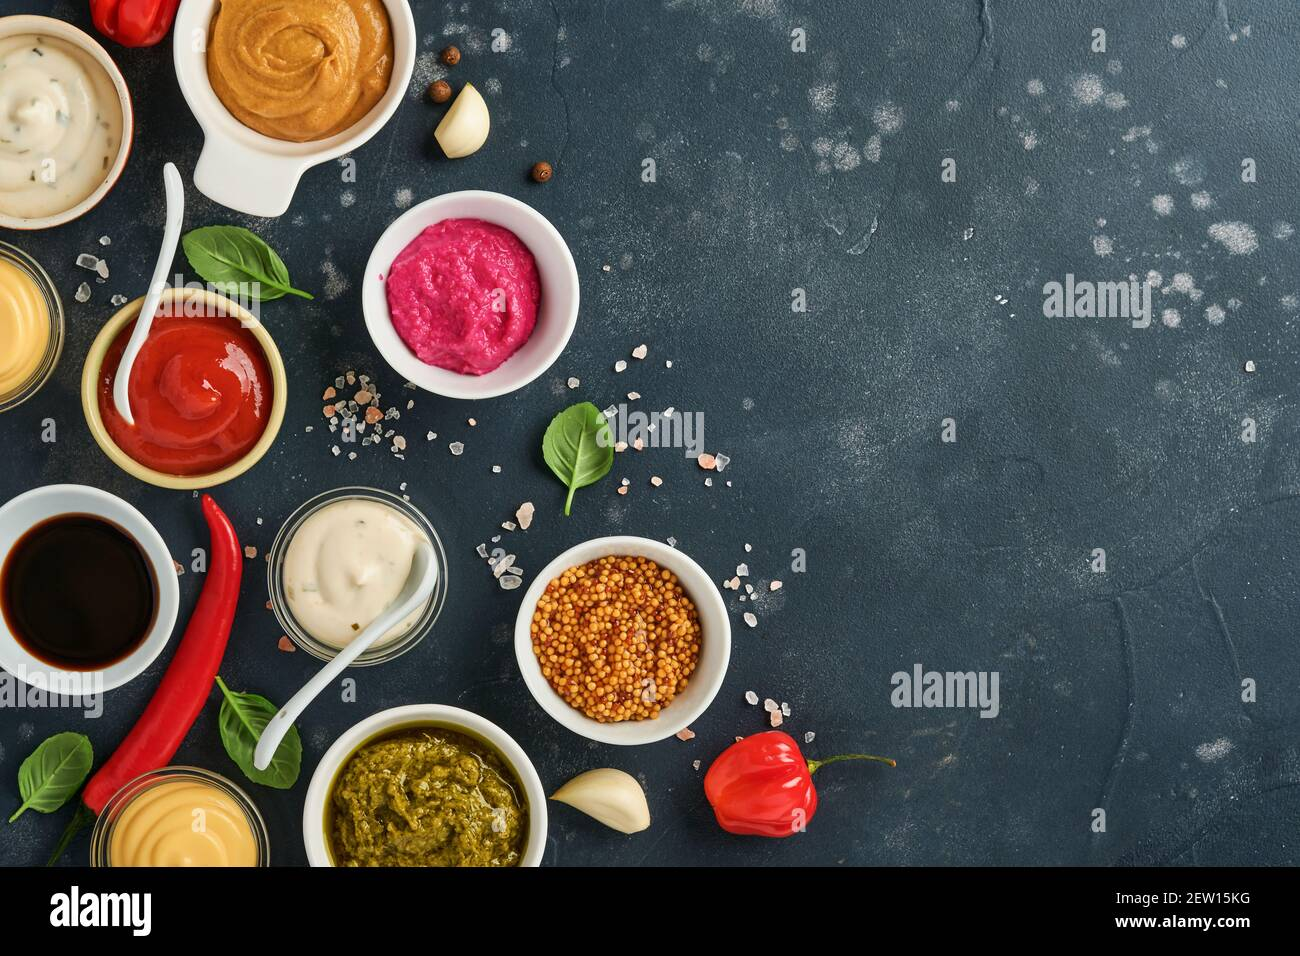 Set of sauces in bowls - ketchup, mayonnaise, mustard, soy sauce, bbq sauce, pesto, chimichurri, mustard grains on dark stone background. Top view cop Stock Photo